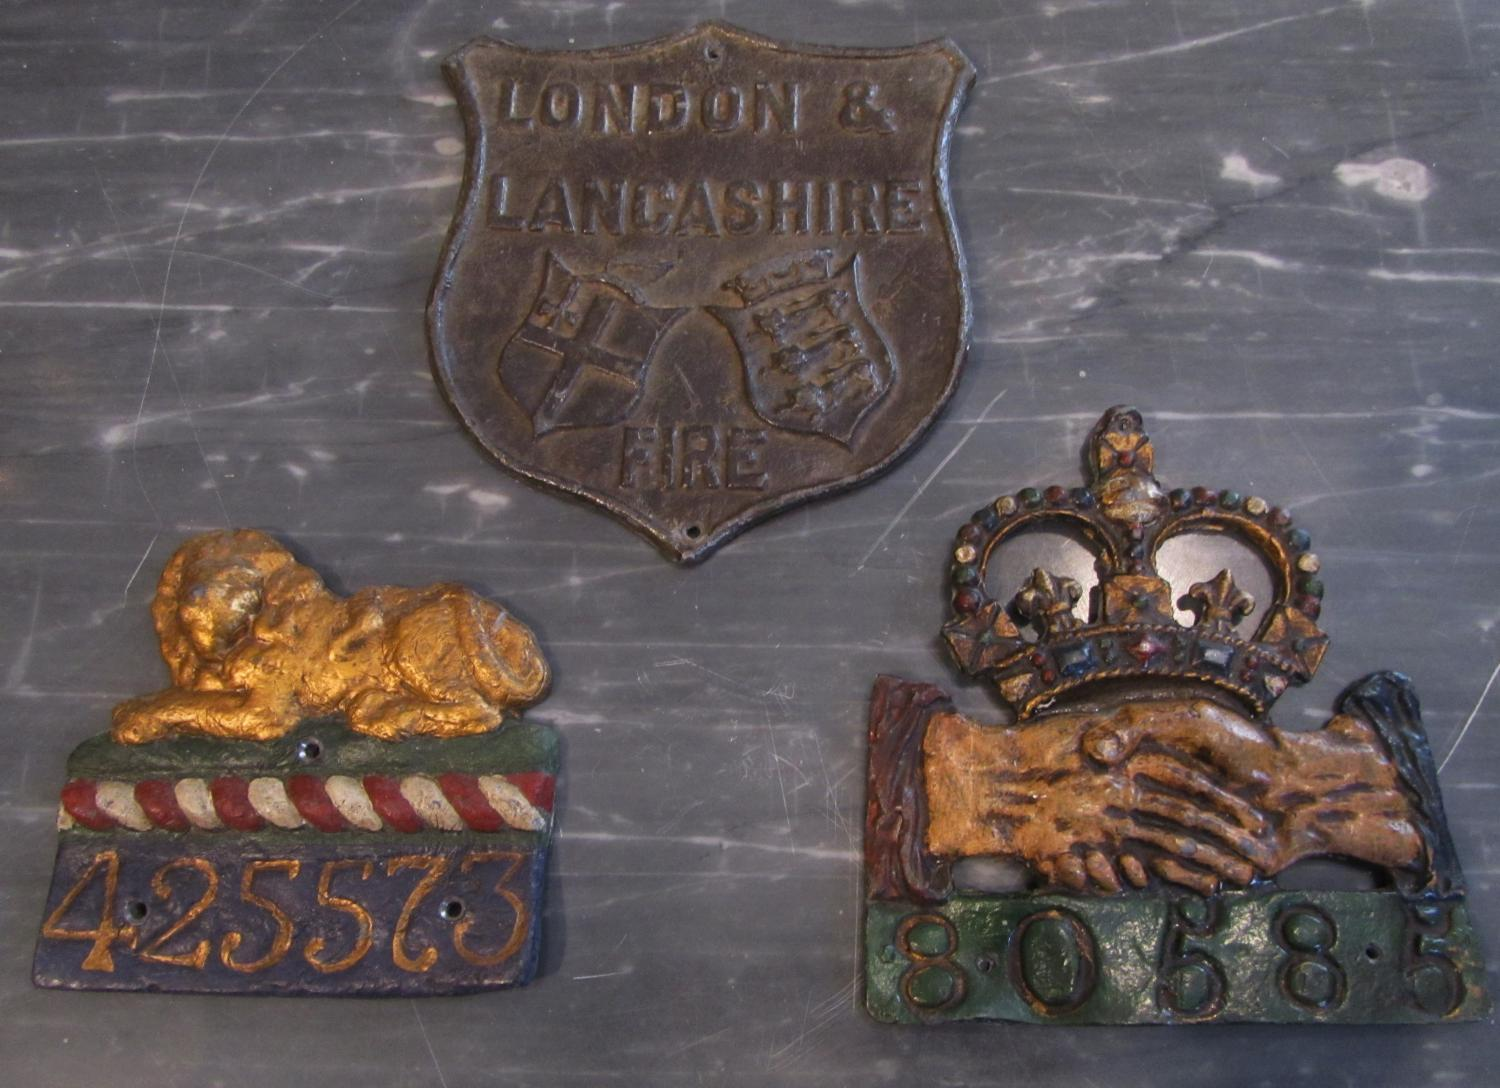 3 19thC lead fire plaques